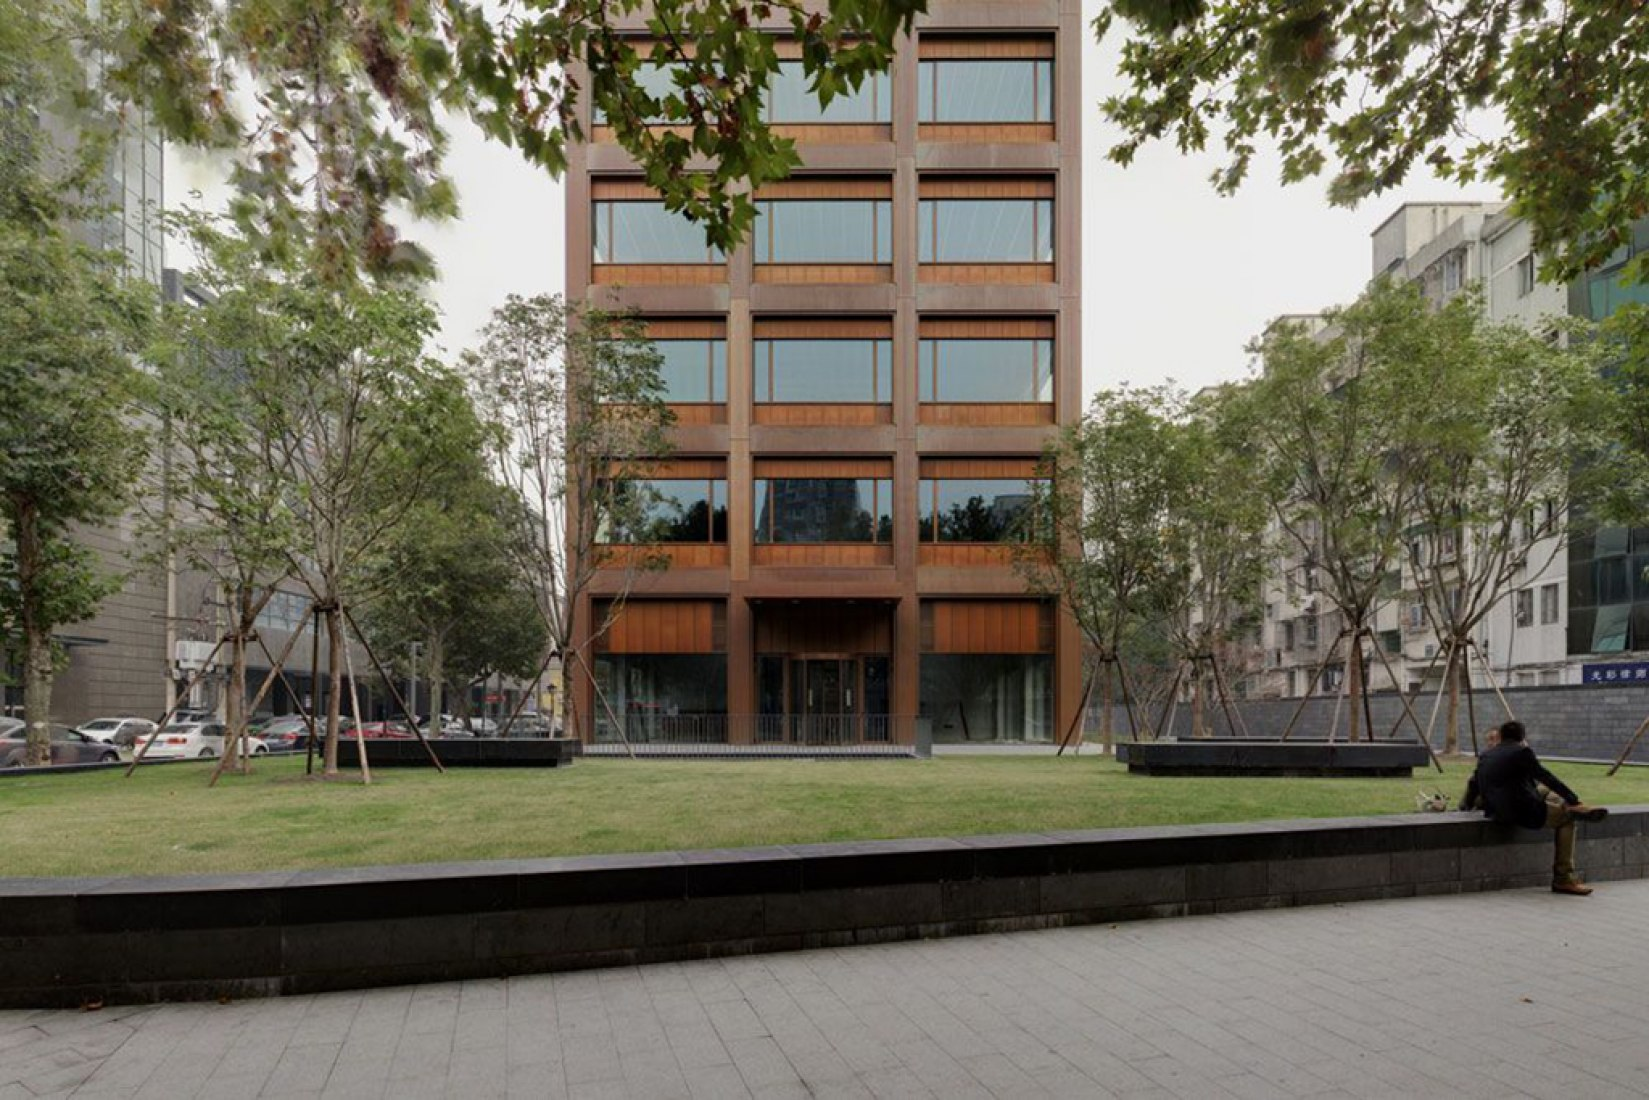 Edificio de oficinas en Moganshan Road por David Chipperfield Architects. Fotografía © Simon Menges.